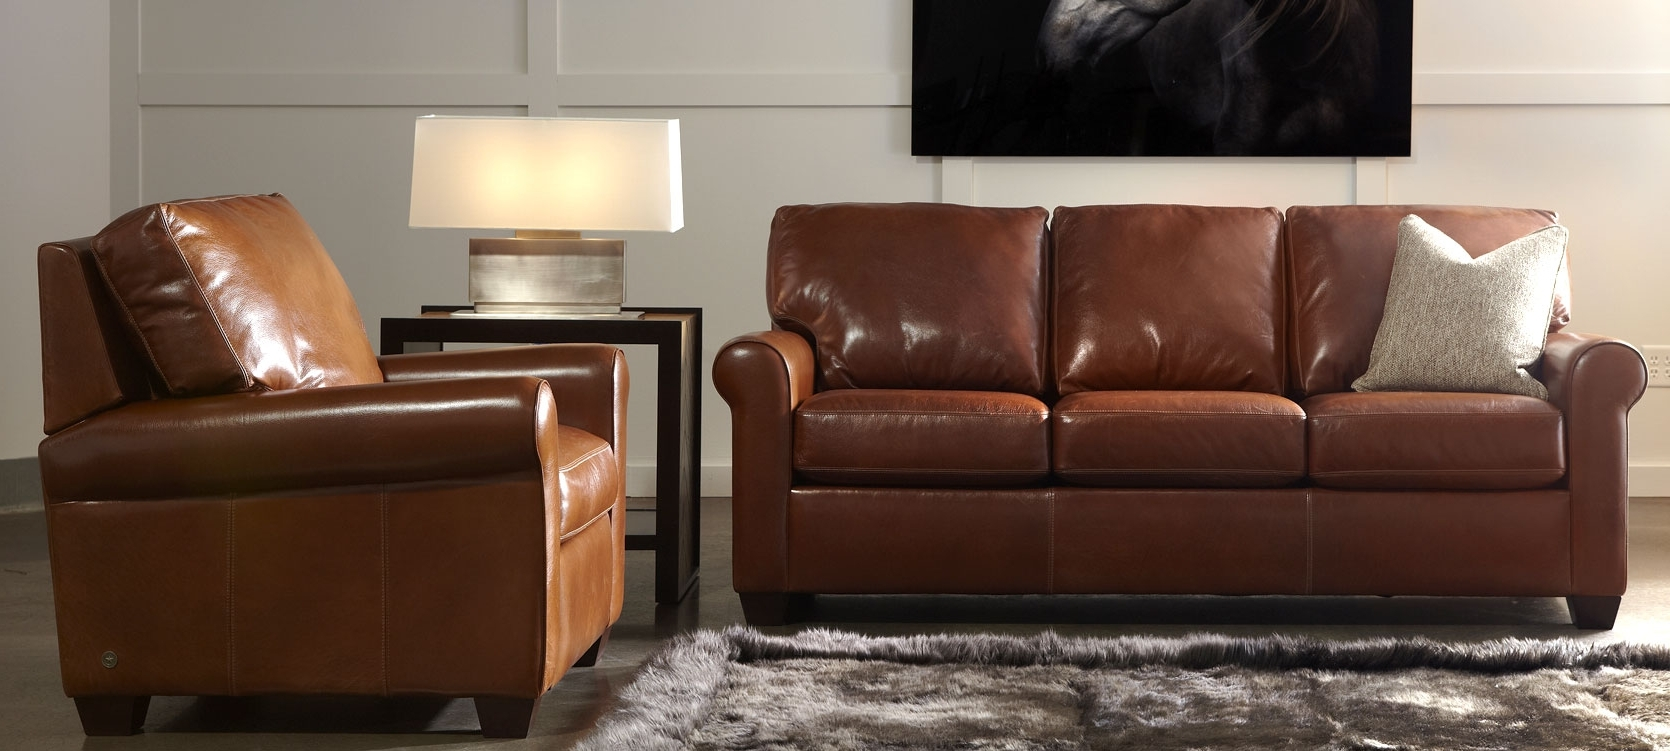 Furniture Store In Eugene, Oregon – Riley's Real Wood Furniture Throughout 2018 Eugene Oregon Sectional Sofas (View 11 of 15)